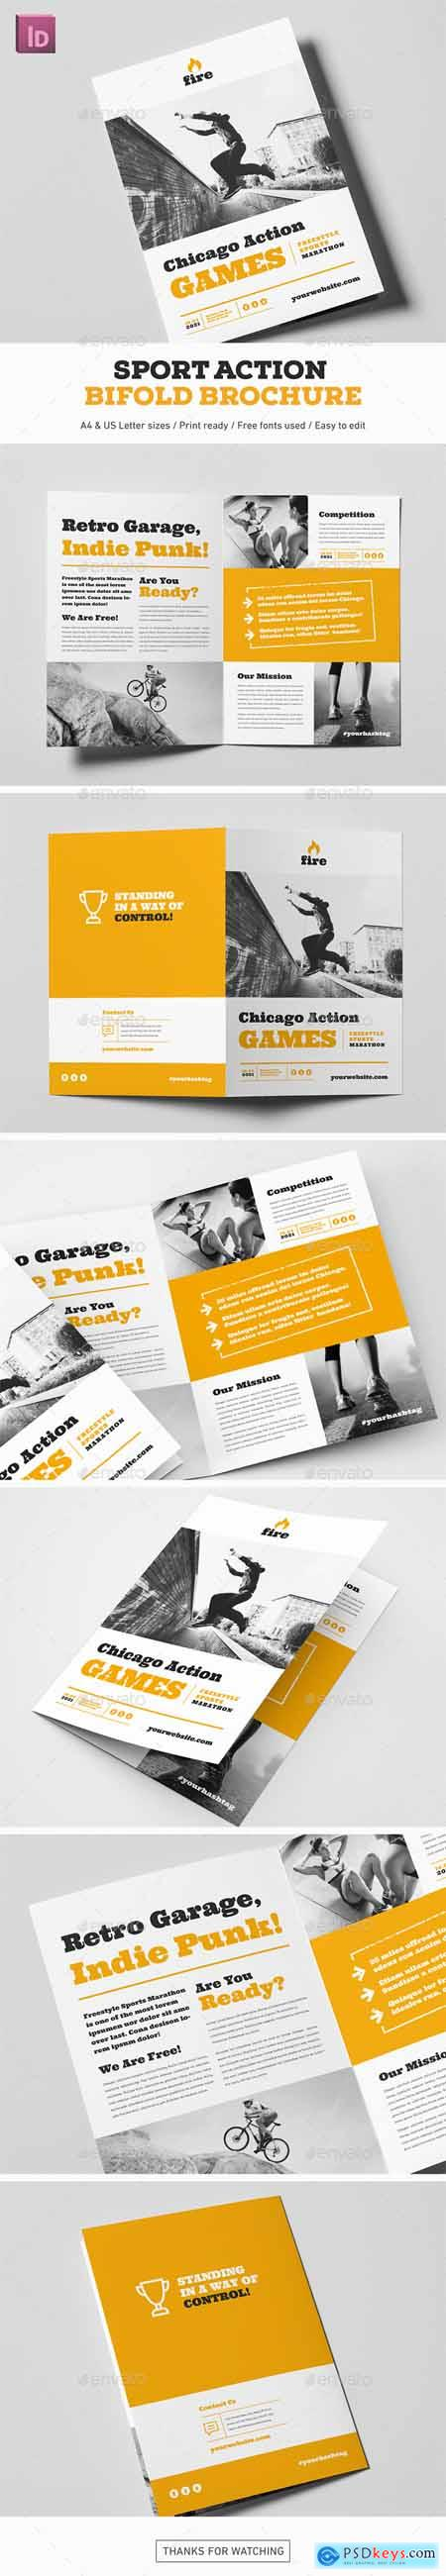 Graphicriver Sport Action Bifold Brochure